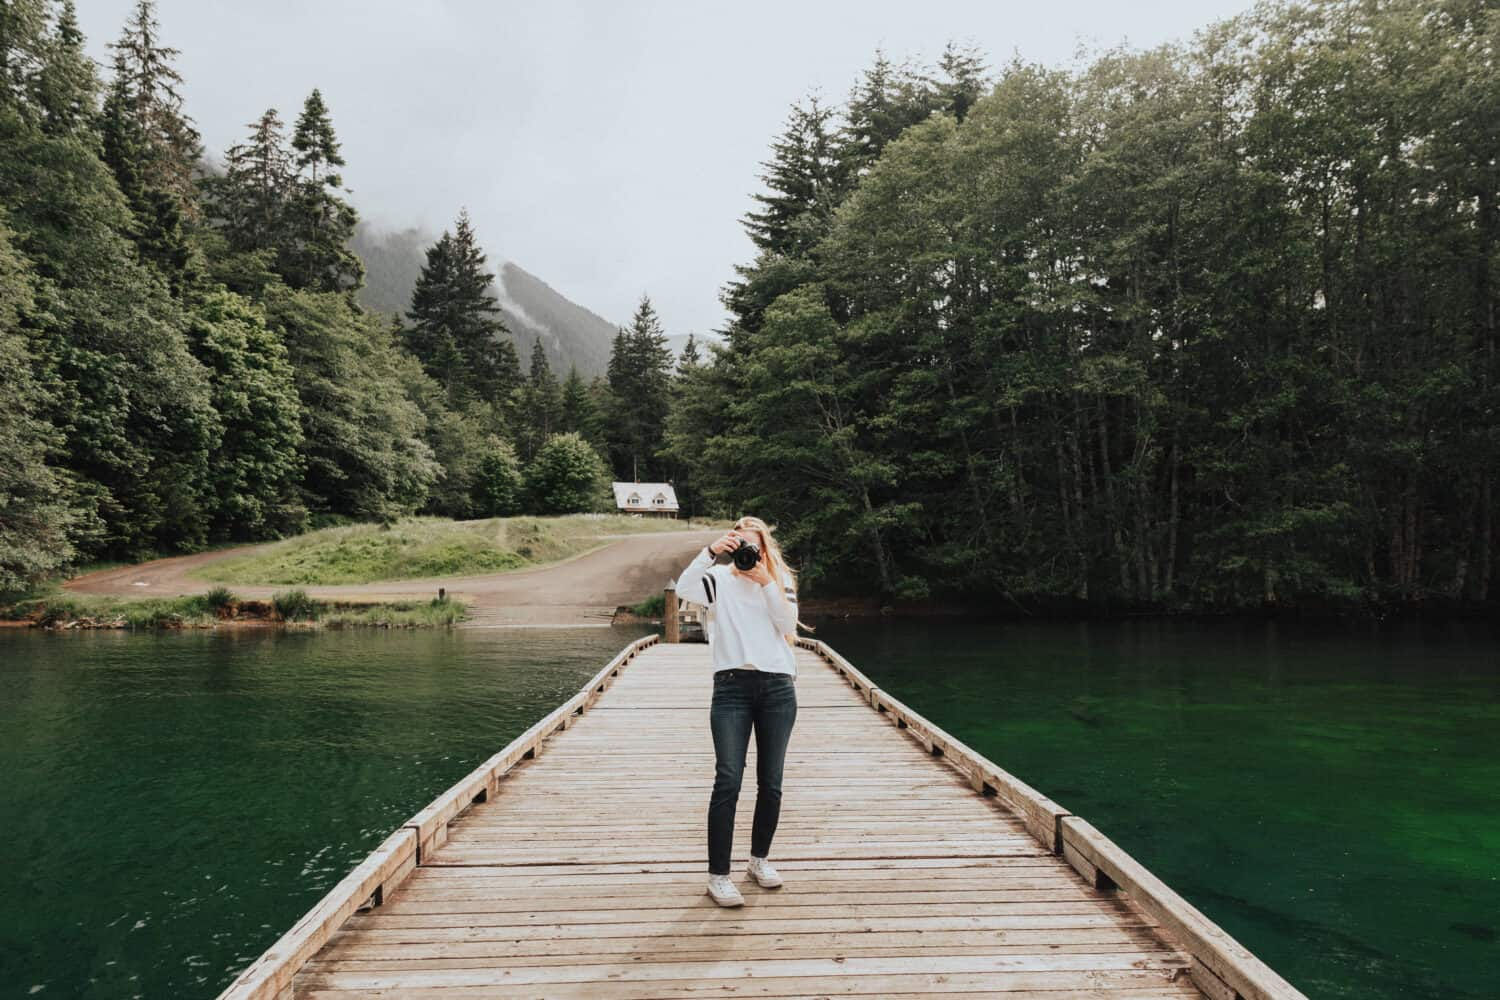 Emily Mandagie at Lake Crescent Dock - Things To Do In Olympic National Park - TheMandagies.com